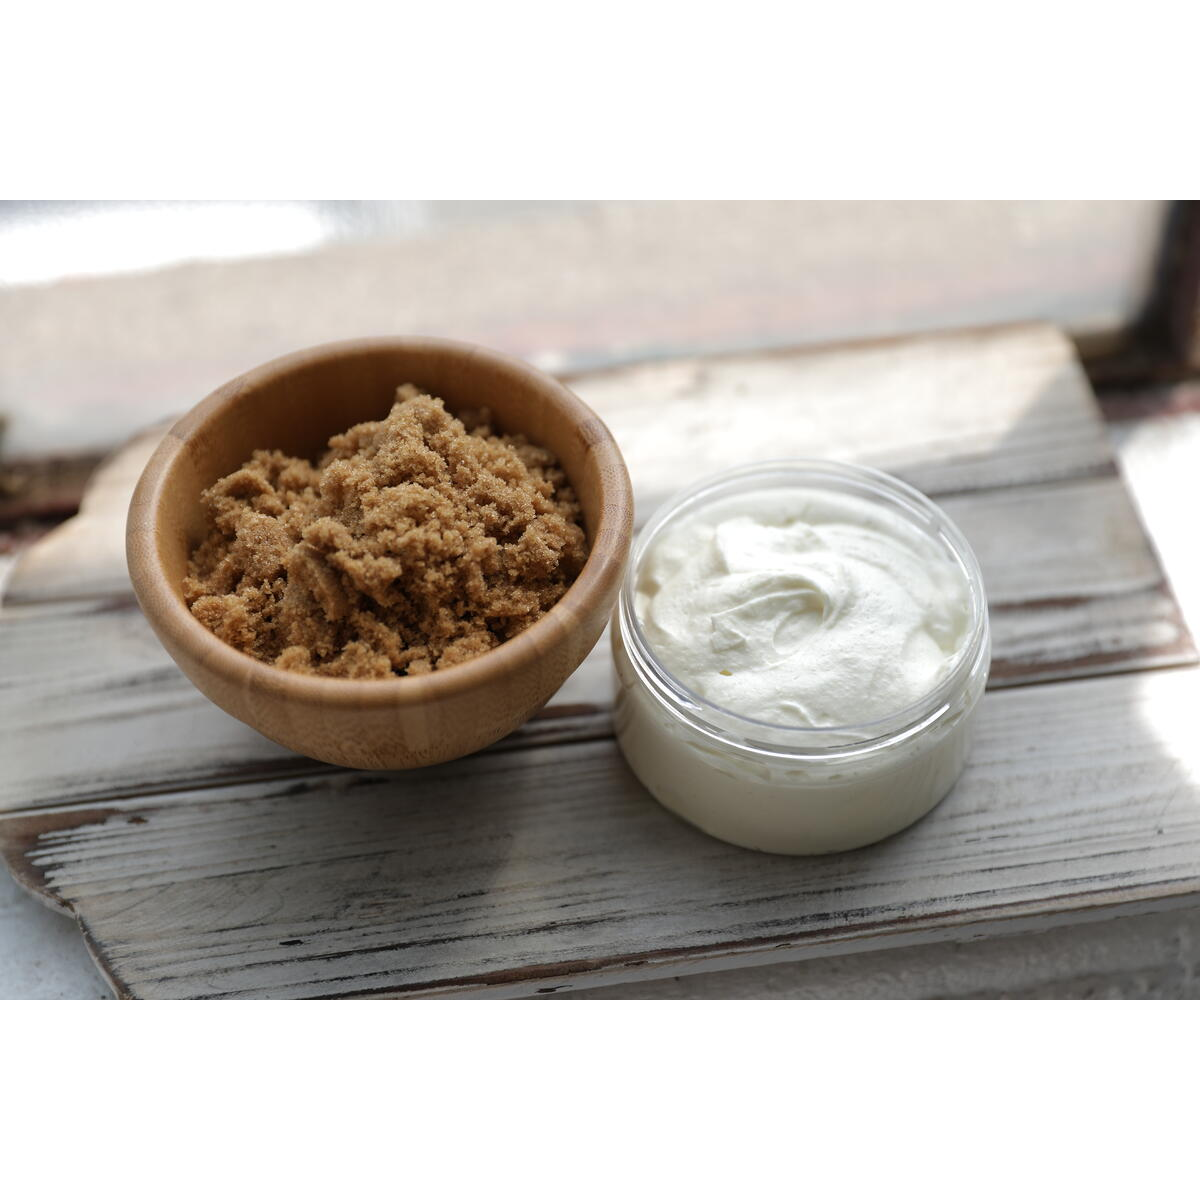 Brown Sugar Body Butter (4oz) Whipped Shea Butter for Women and Men by BC's Body Butters